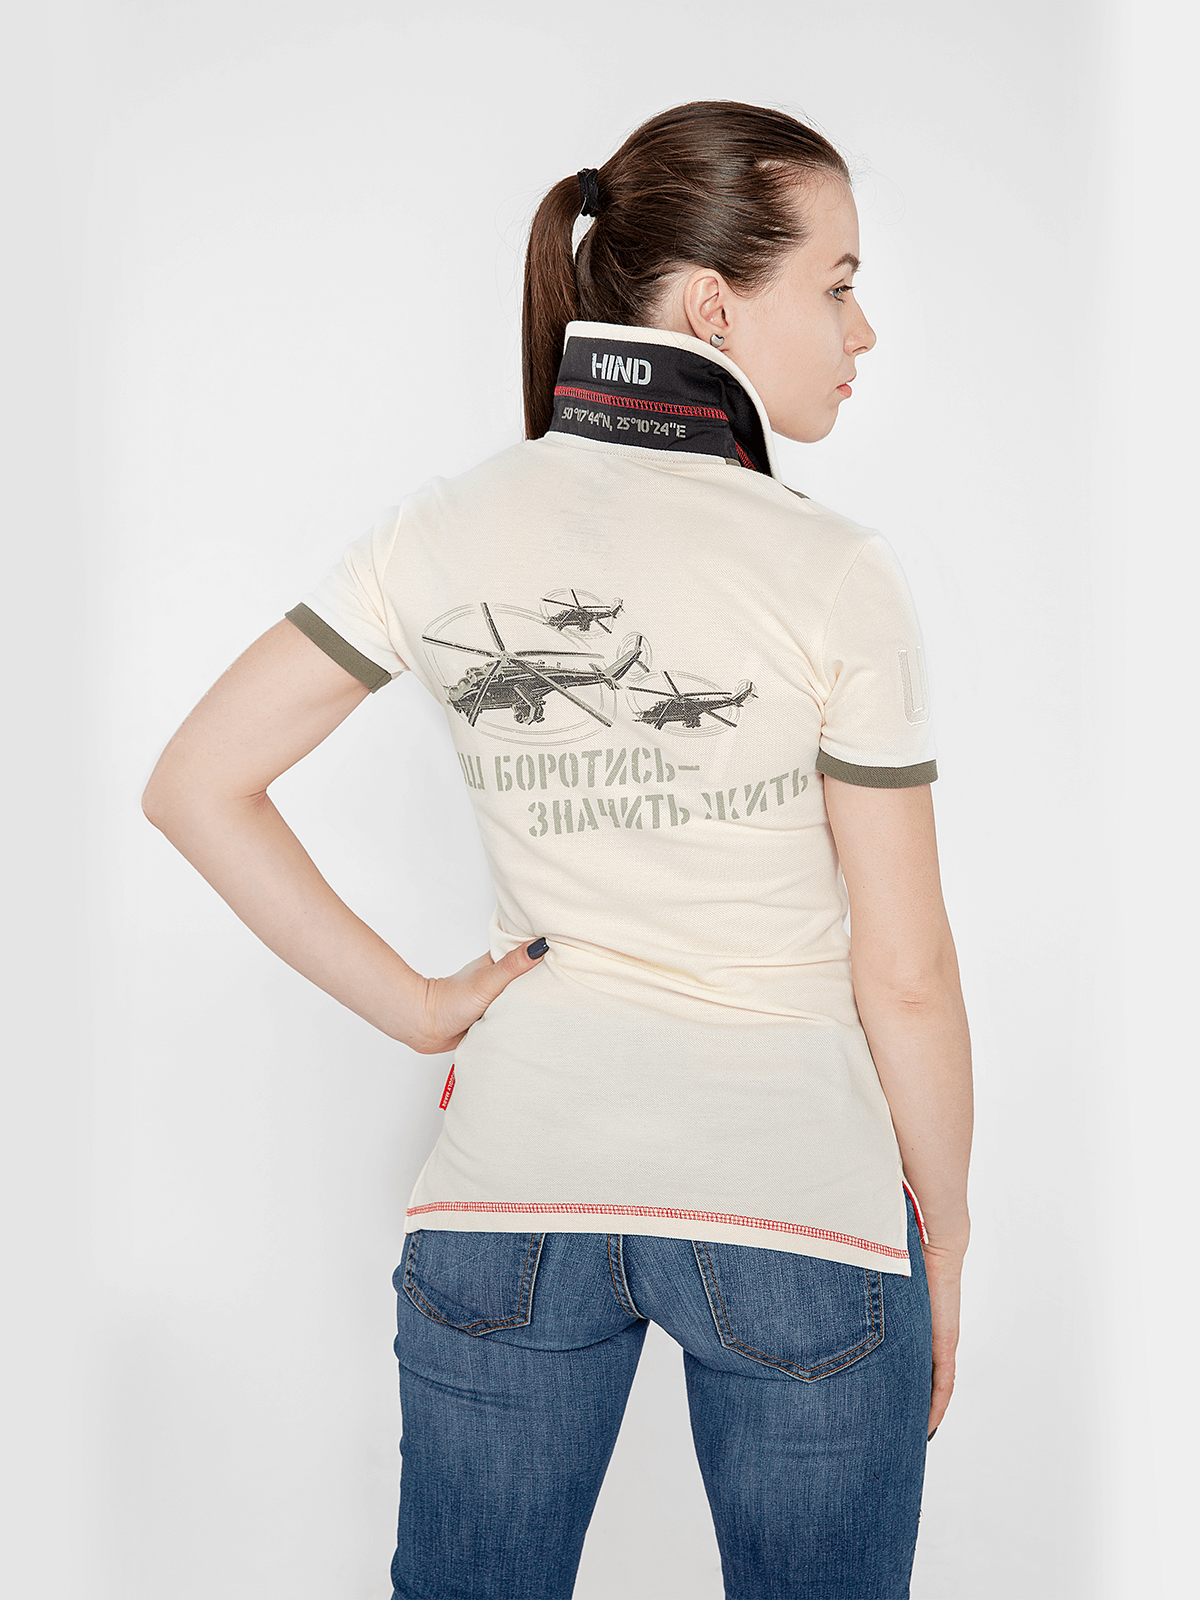 Women's Polo Shirt 16 Brigade. Color ivory.  Technique of prints applied: embroidery, silkscreen printing.